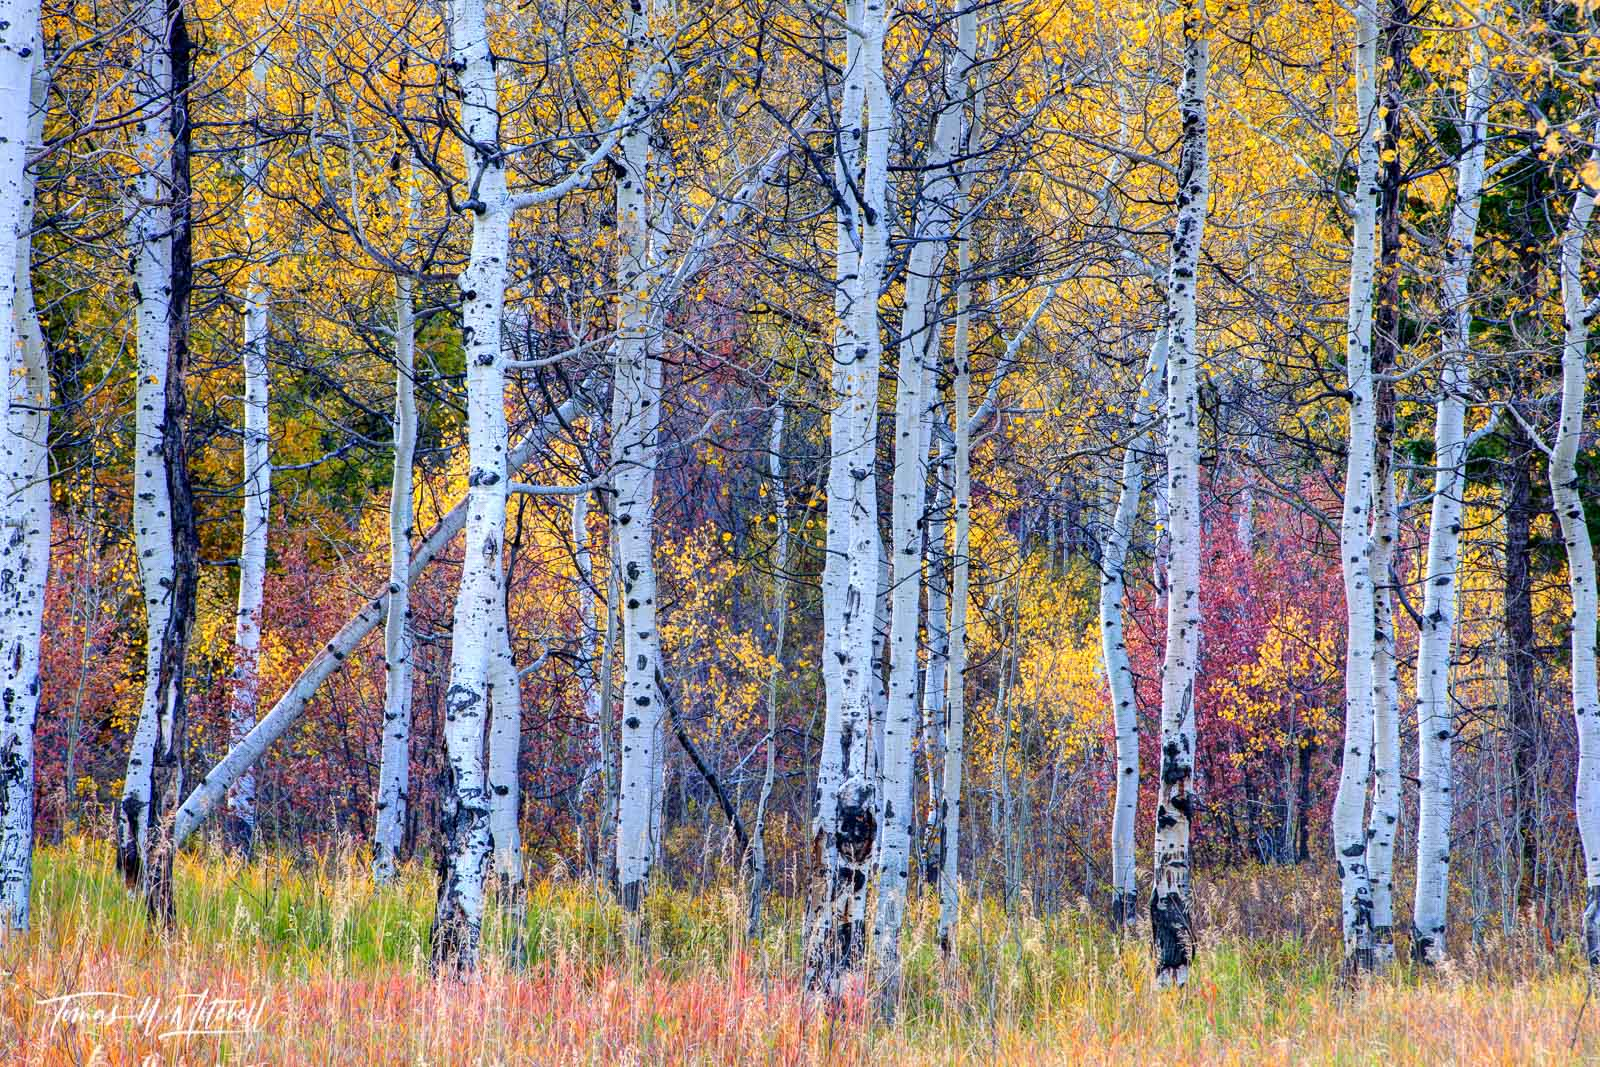 limited edition, fine art, prints, photograph, fall, aspen trees, golden leaves, enchanted forest, red, green, grass, yellow, patchwork of color, photo